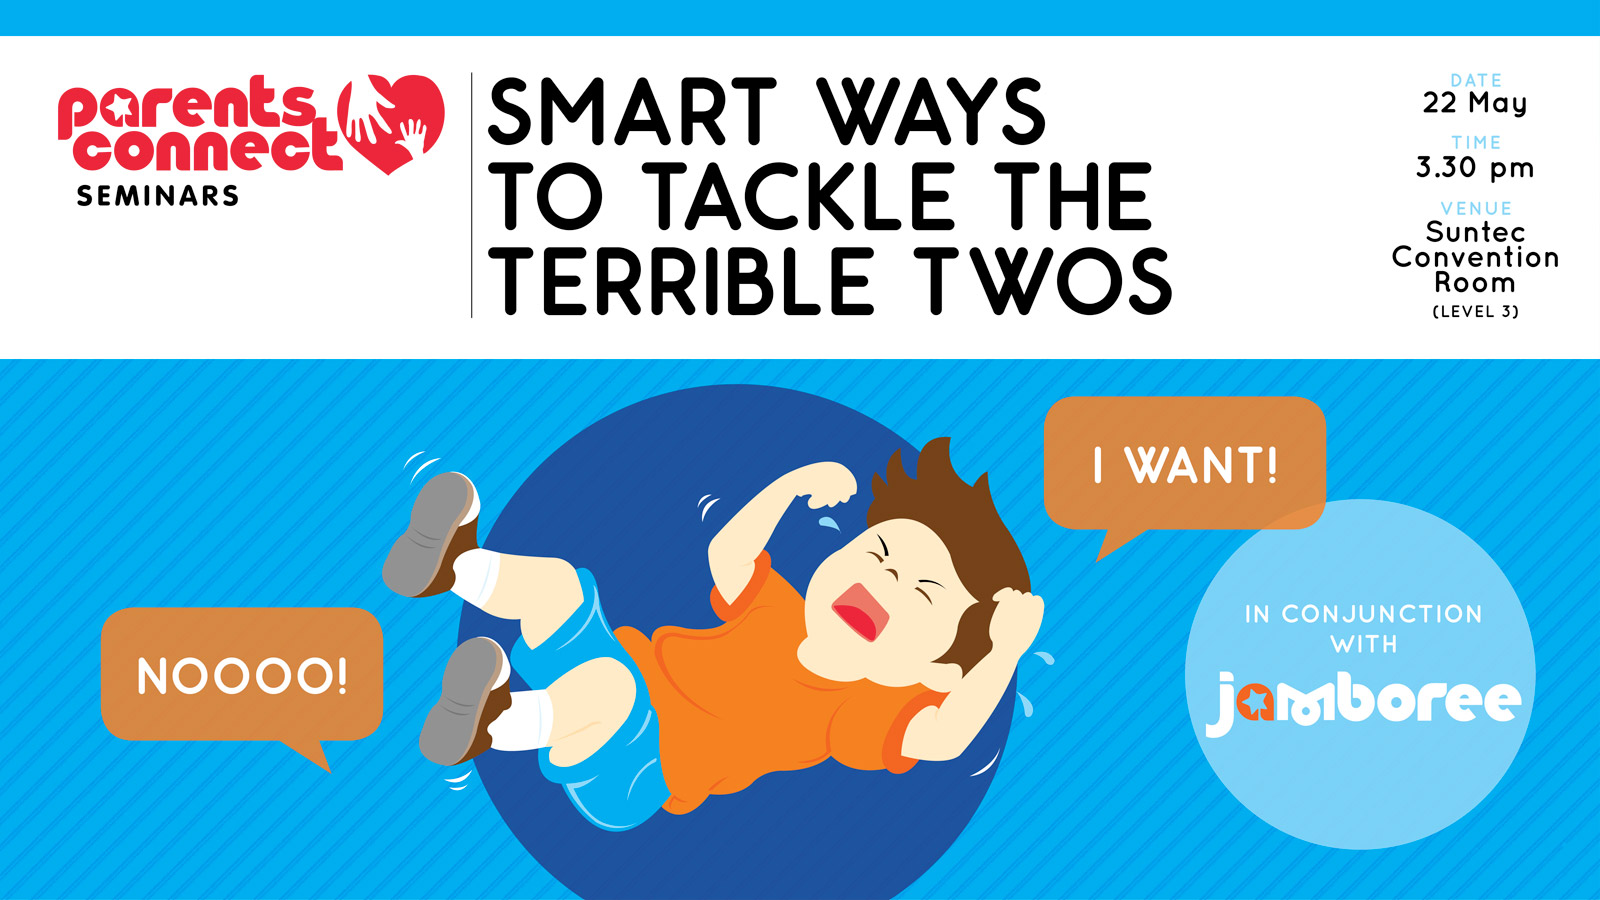 Smart Ways to Tackle the Terrible Twos